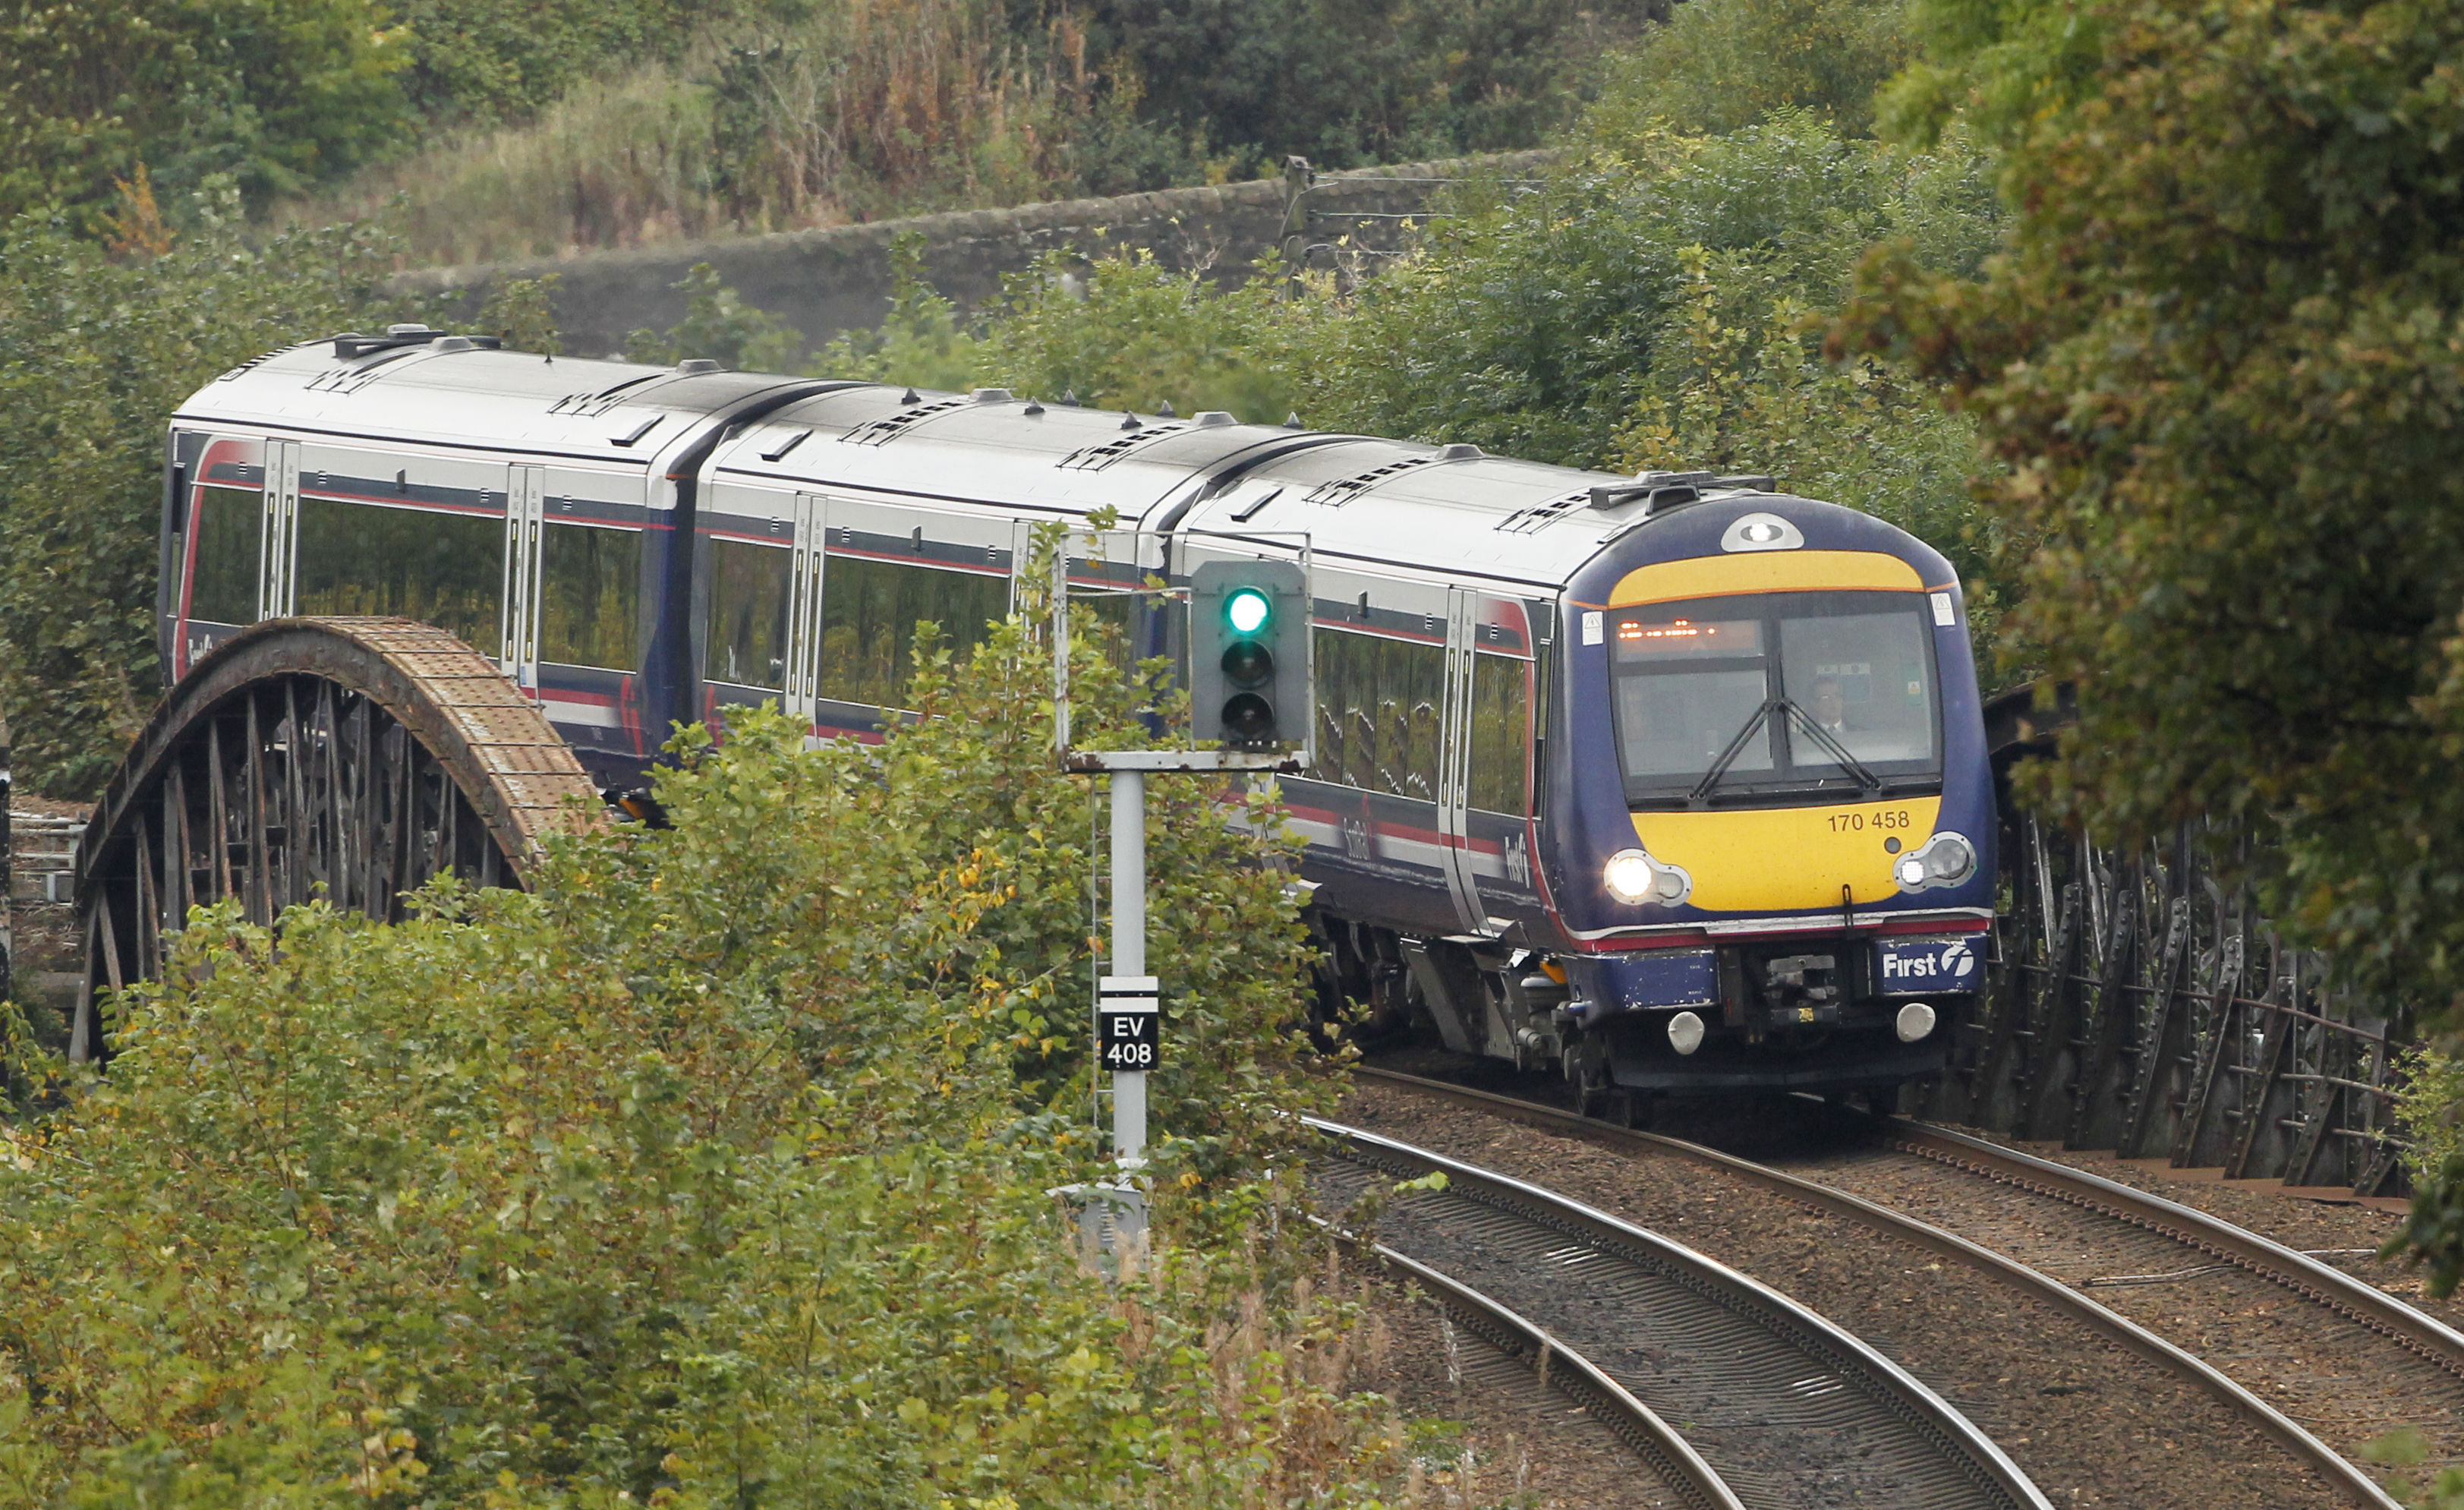 Overhanging branches have caused some delays